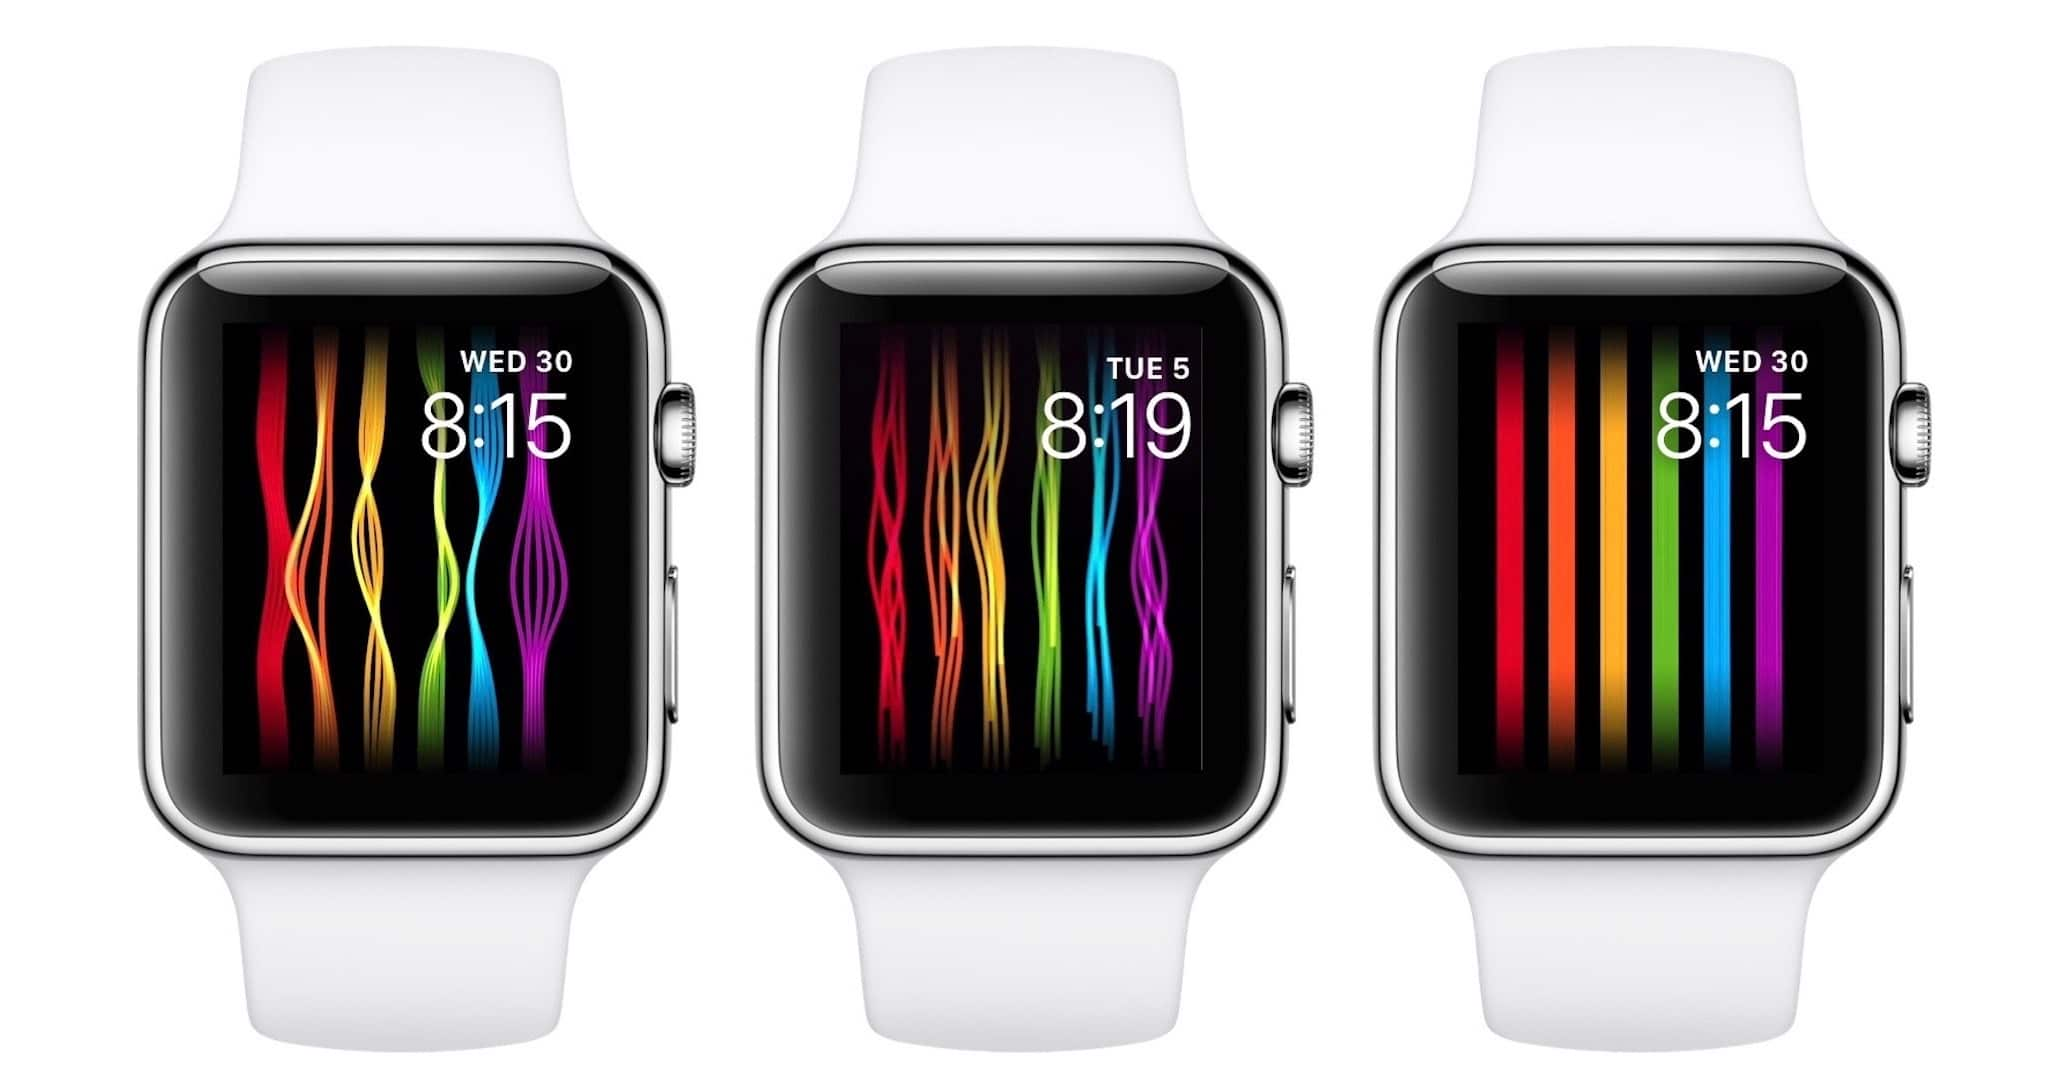 heres-the-new-apple-watch-pride-face-that-will-become-available-next-monday